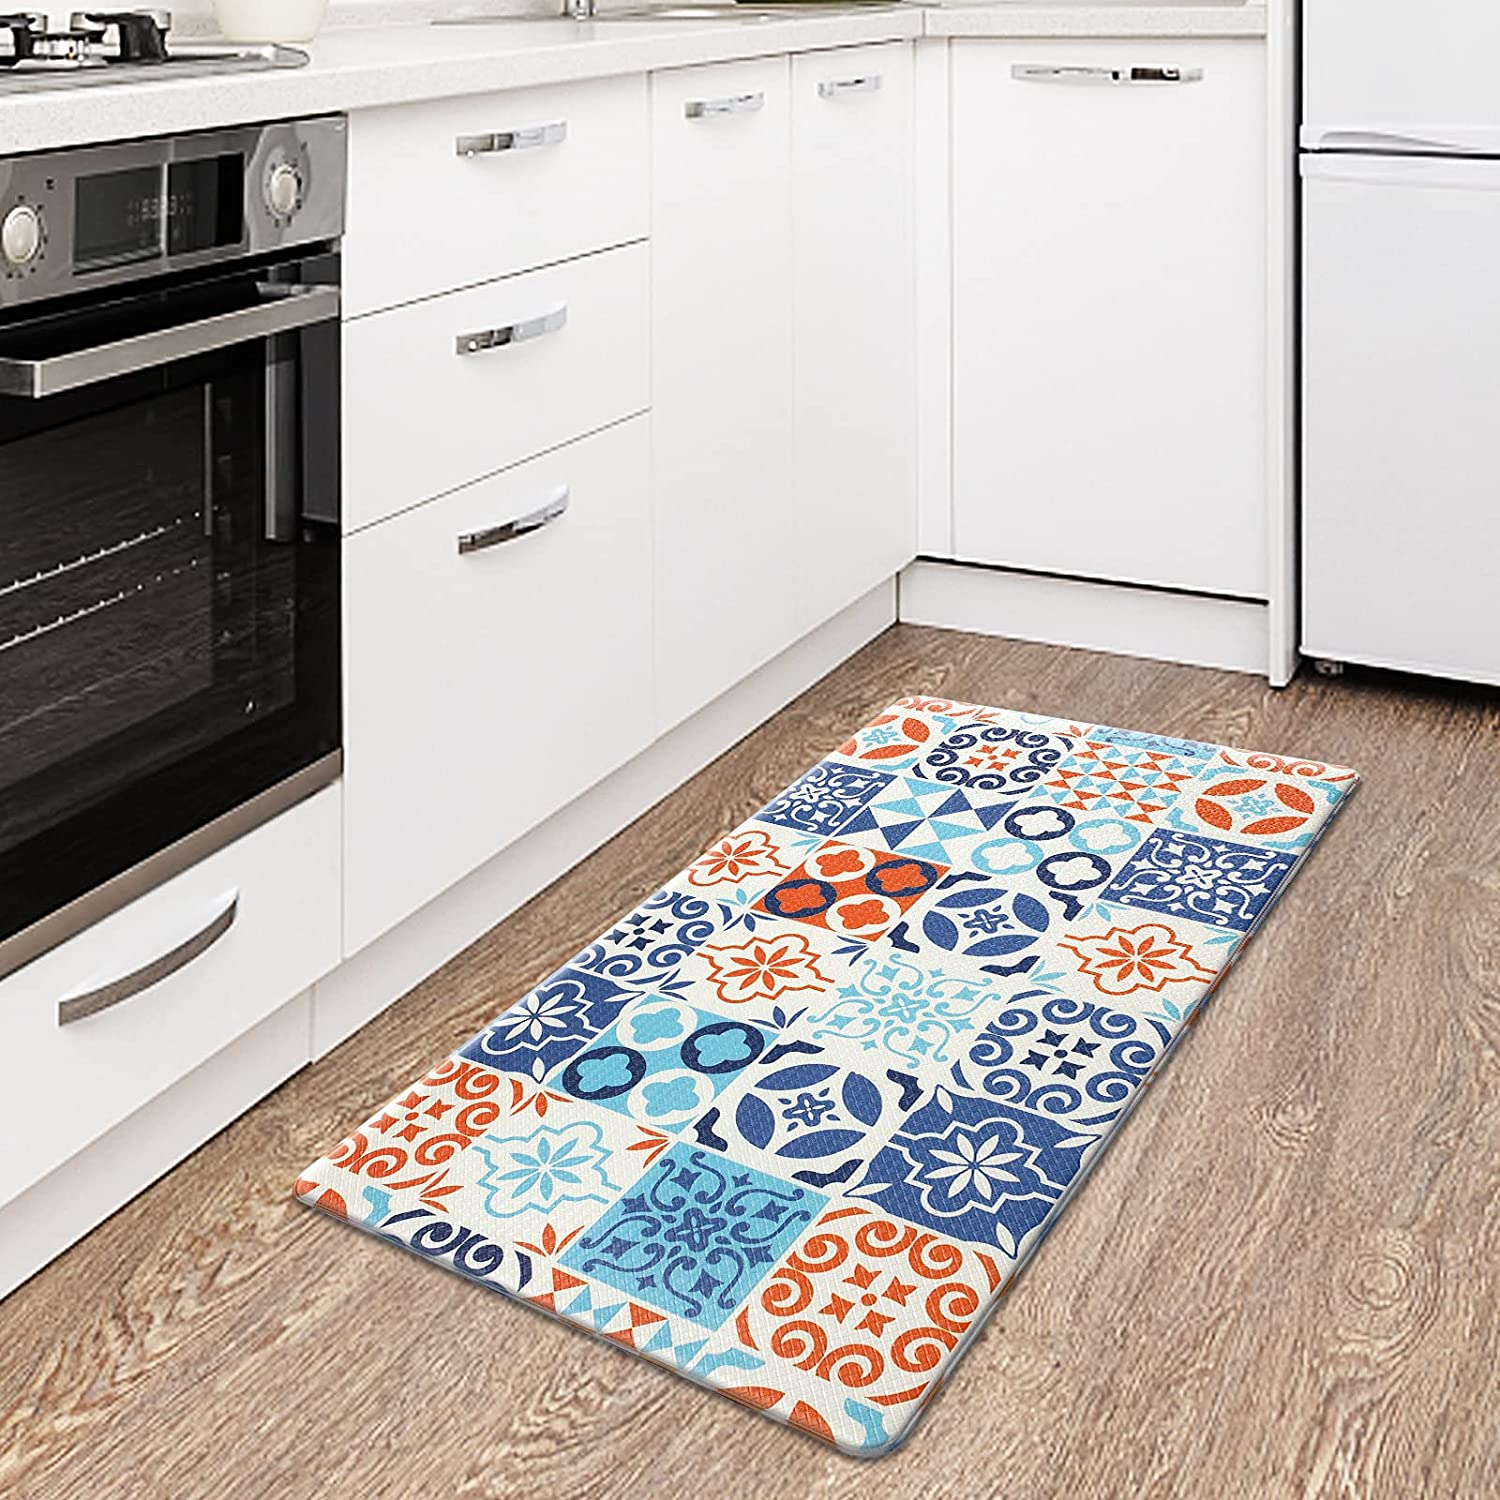 Kitchen Mat,Cushioned Anti-Fatigue Kitchen Mat for Standing, Non Skid Washable Ergonomic Comfort Kitchen Mats and Rugs for Home,Sink,Office,Kitchen(Bohemia)